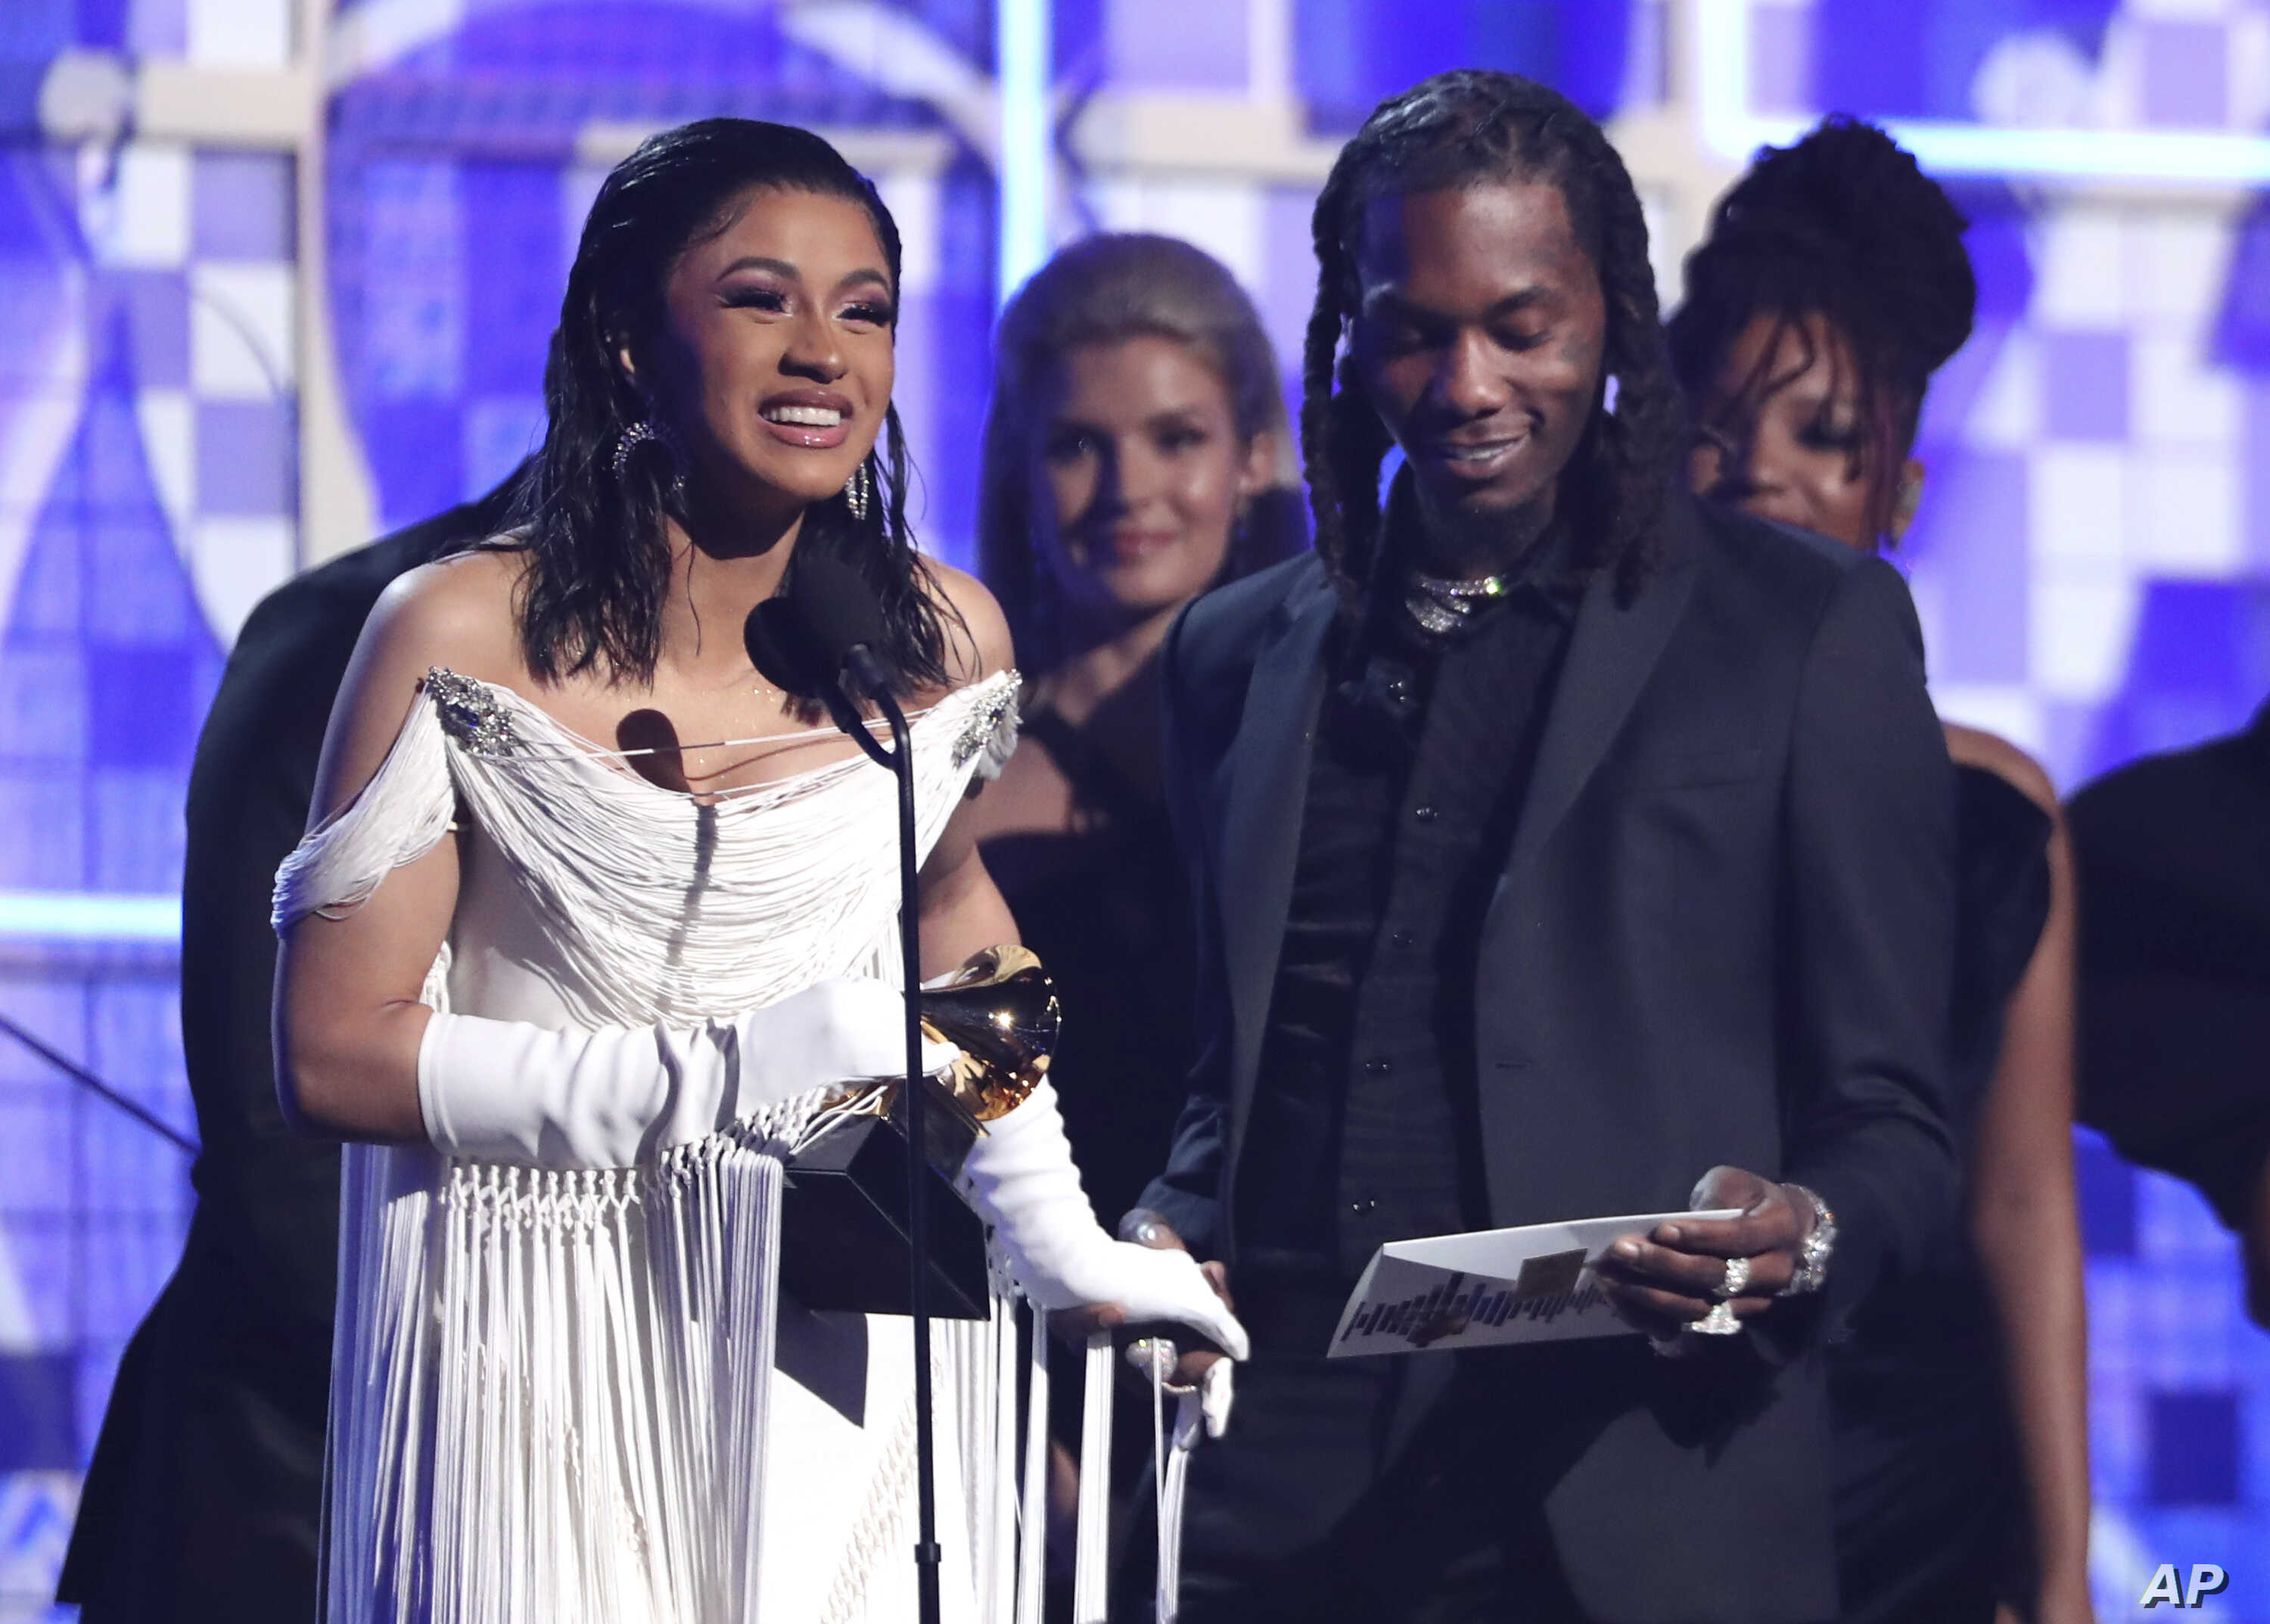 Female Acts, Rap Songs Win Big at Grammys | Voice of America